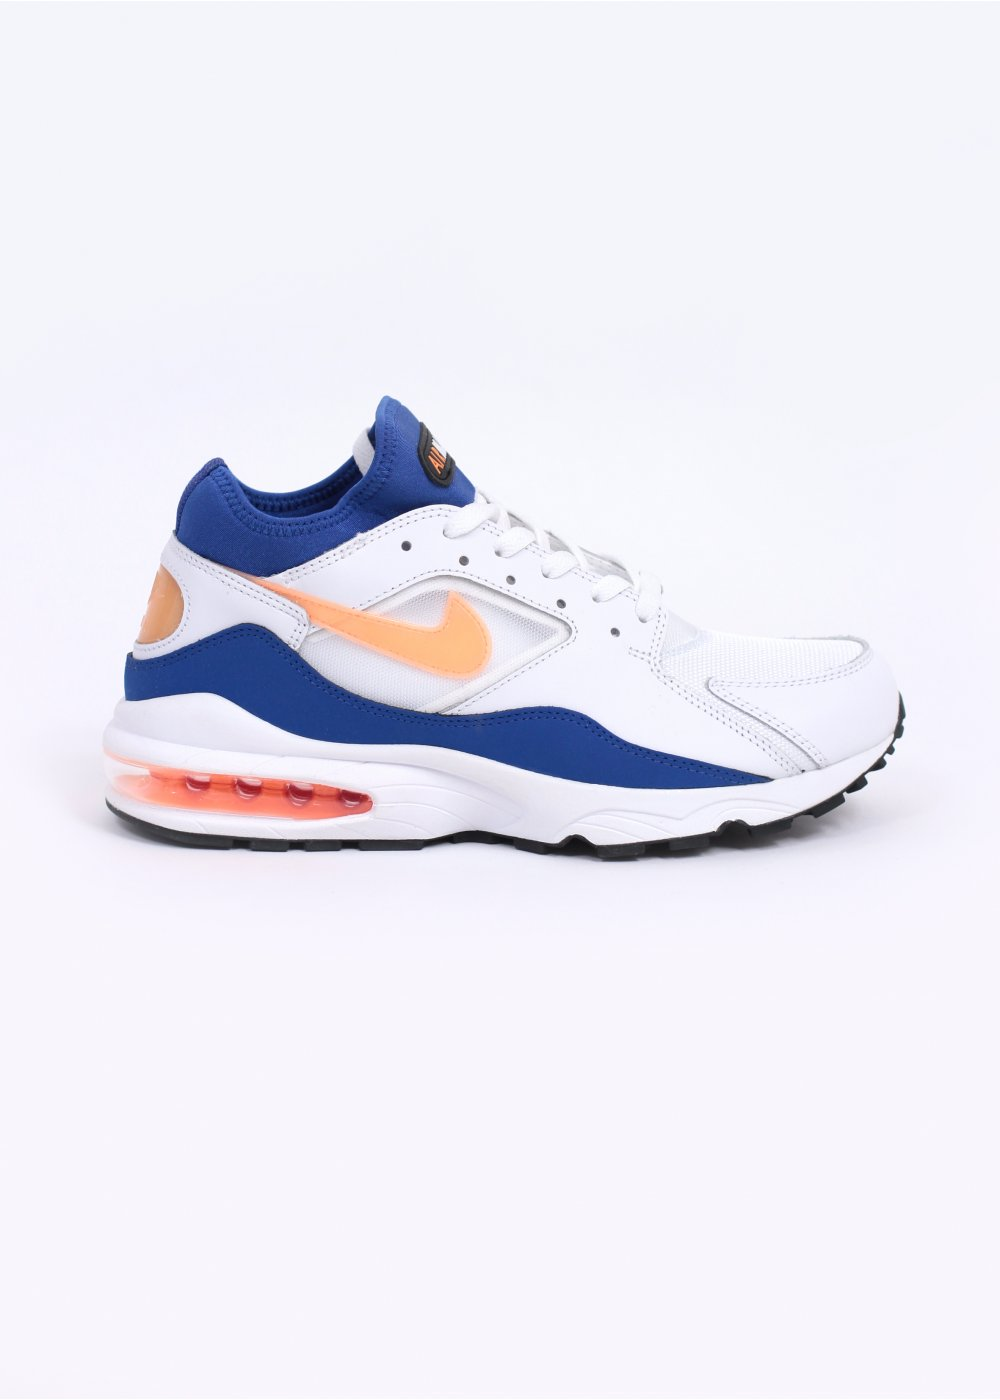 low priced 149c0 728c1 Air Max 93 Trainers - White   Hyper Blue   Bright Citrus